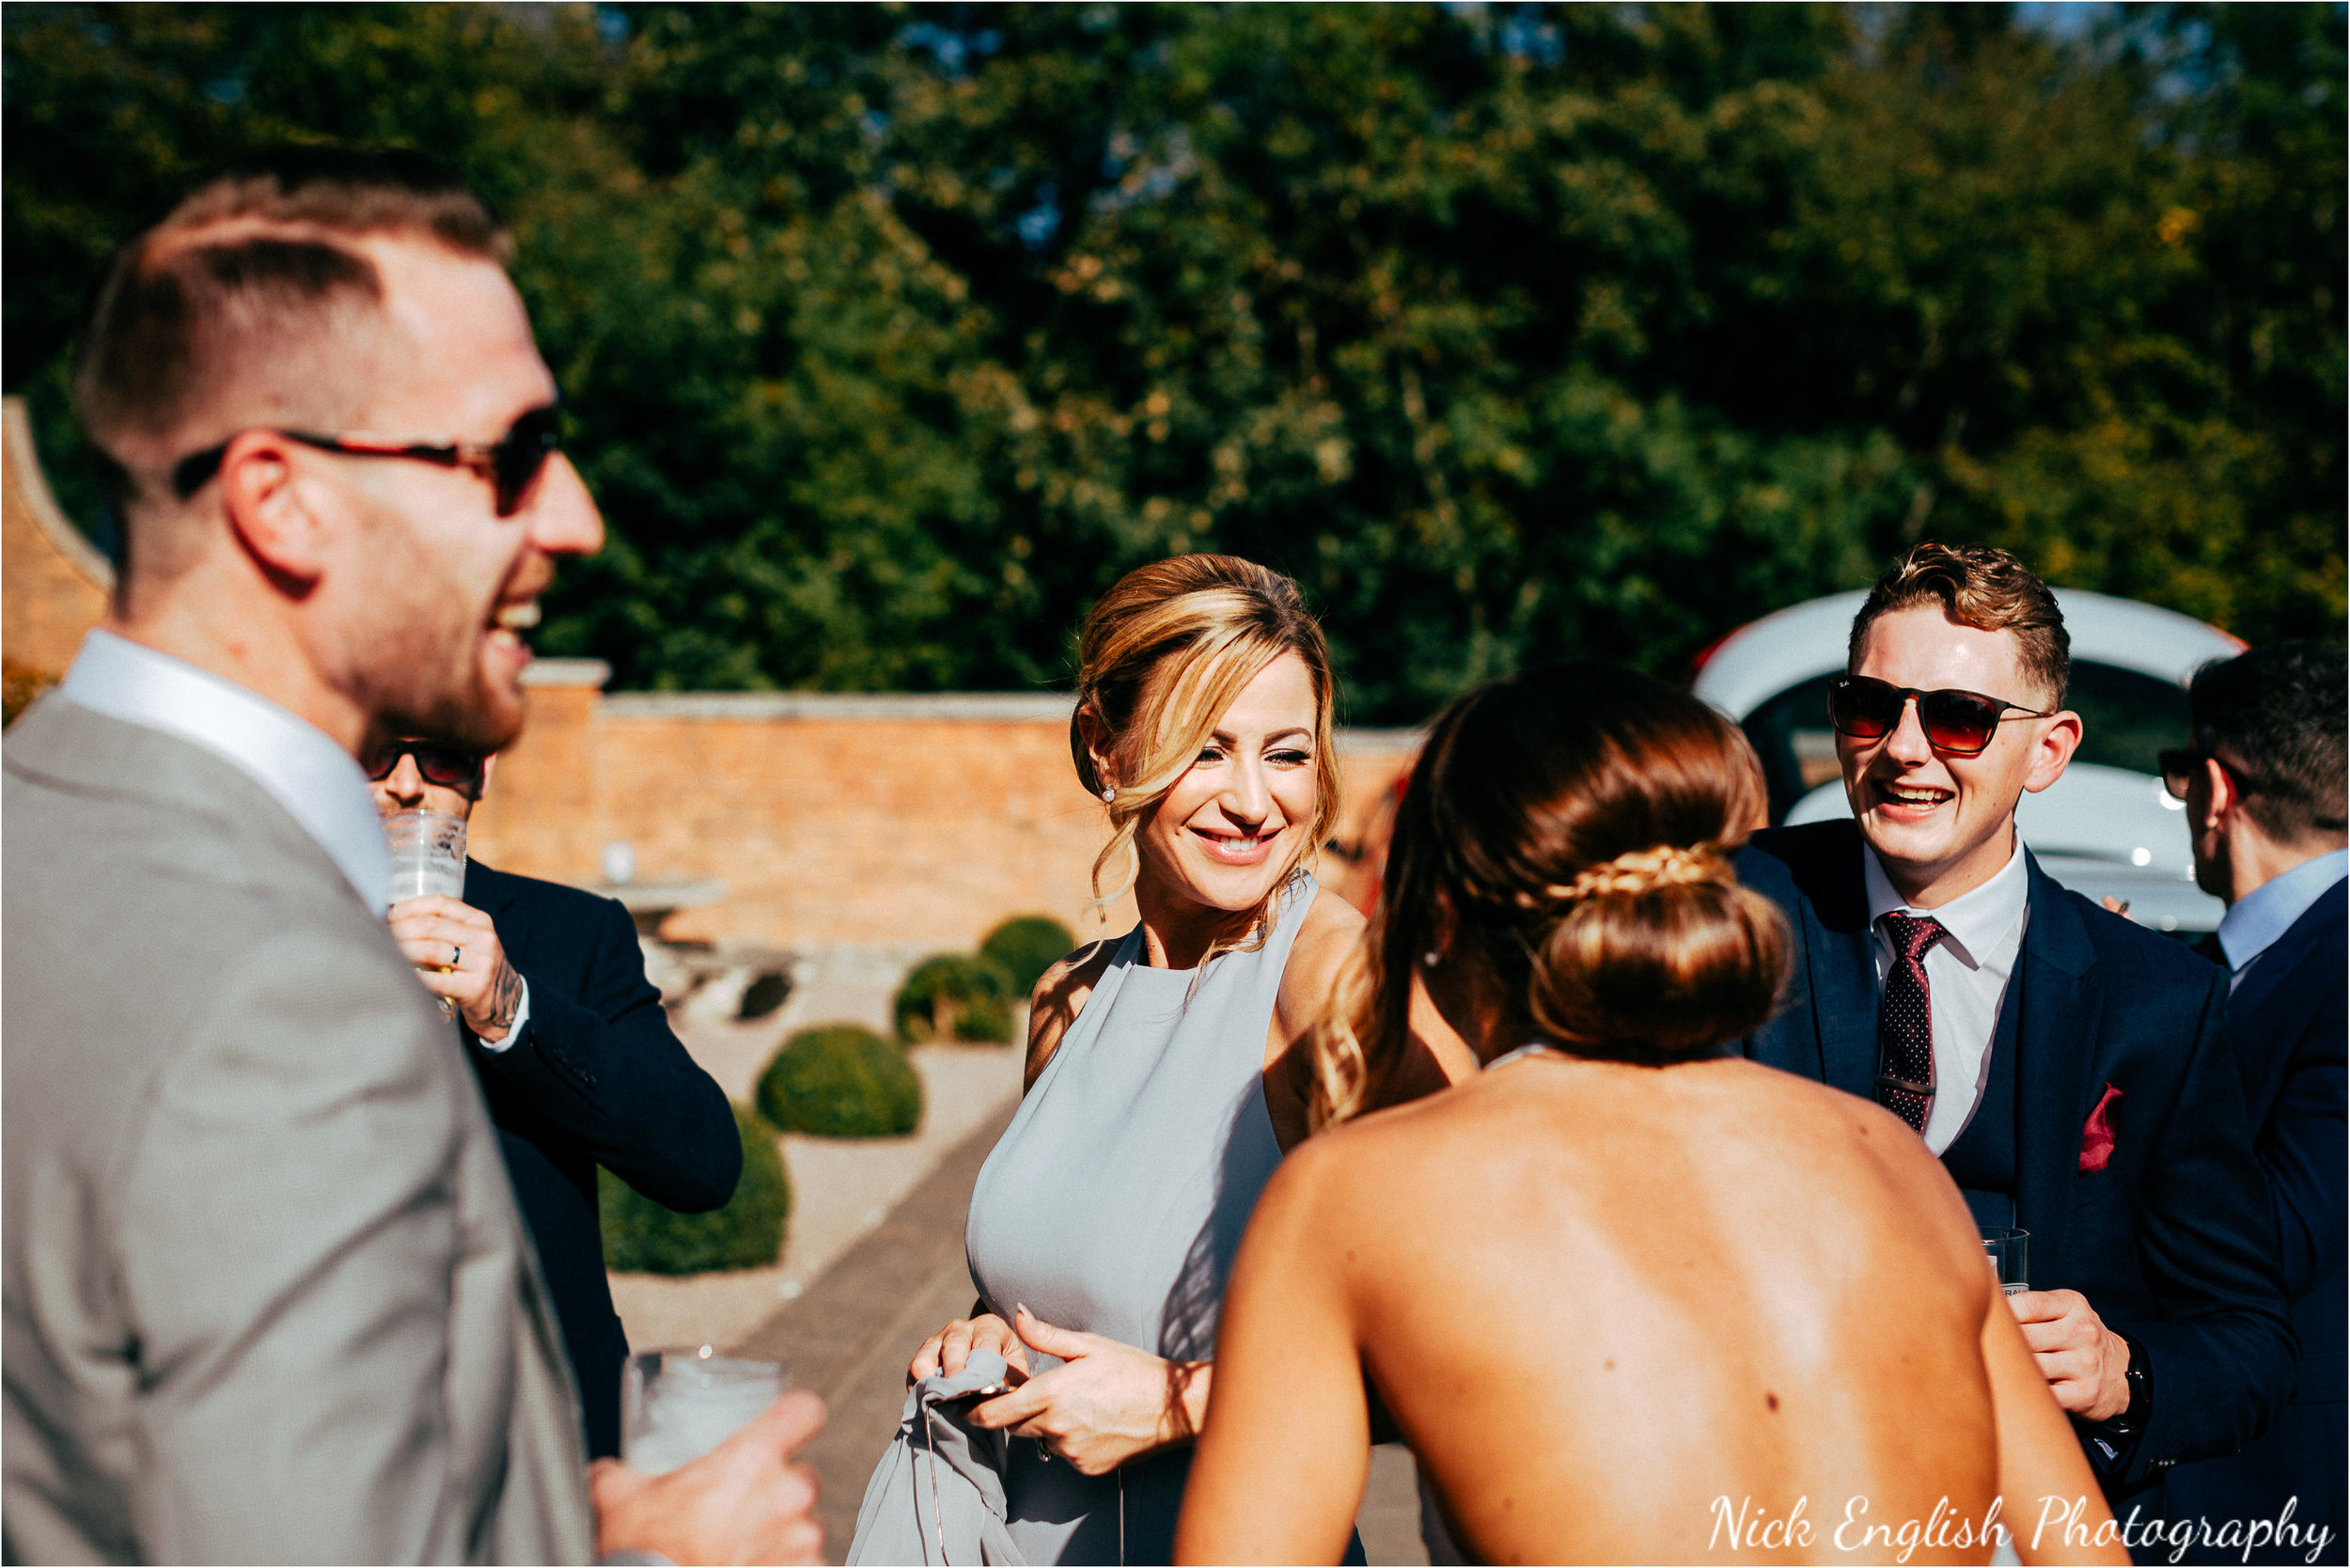 Eaves_Hall_Wedding_Photographs_Nick_English_Photography-147.jpg